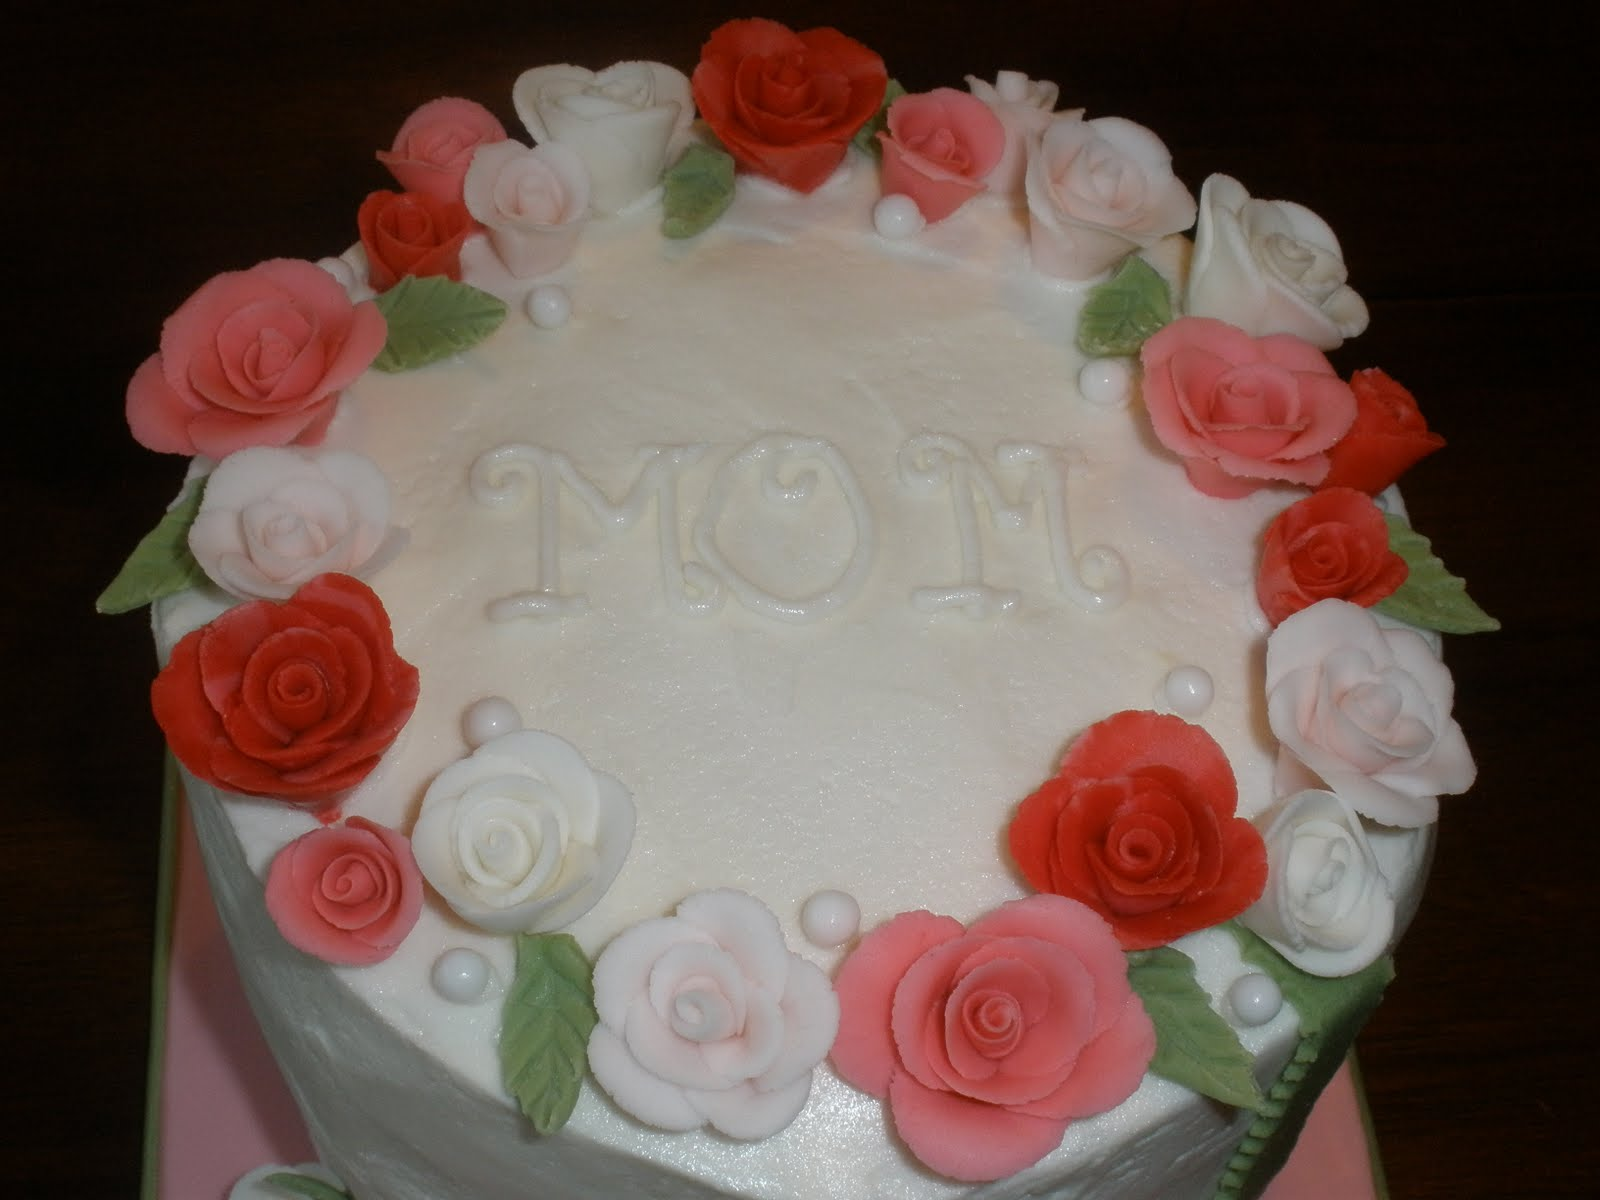 Rose Day Cake Images : It s a piece of cake: Mothers Day Rose Cake